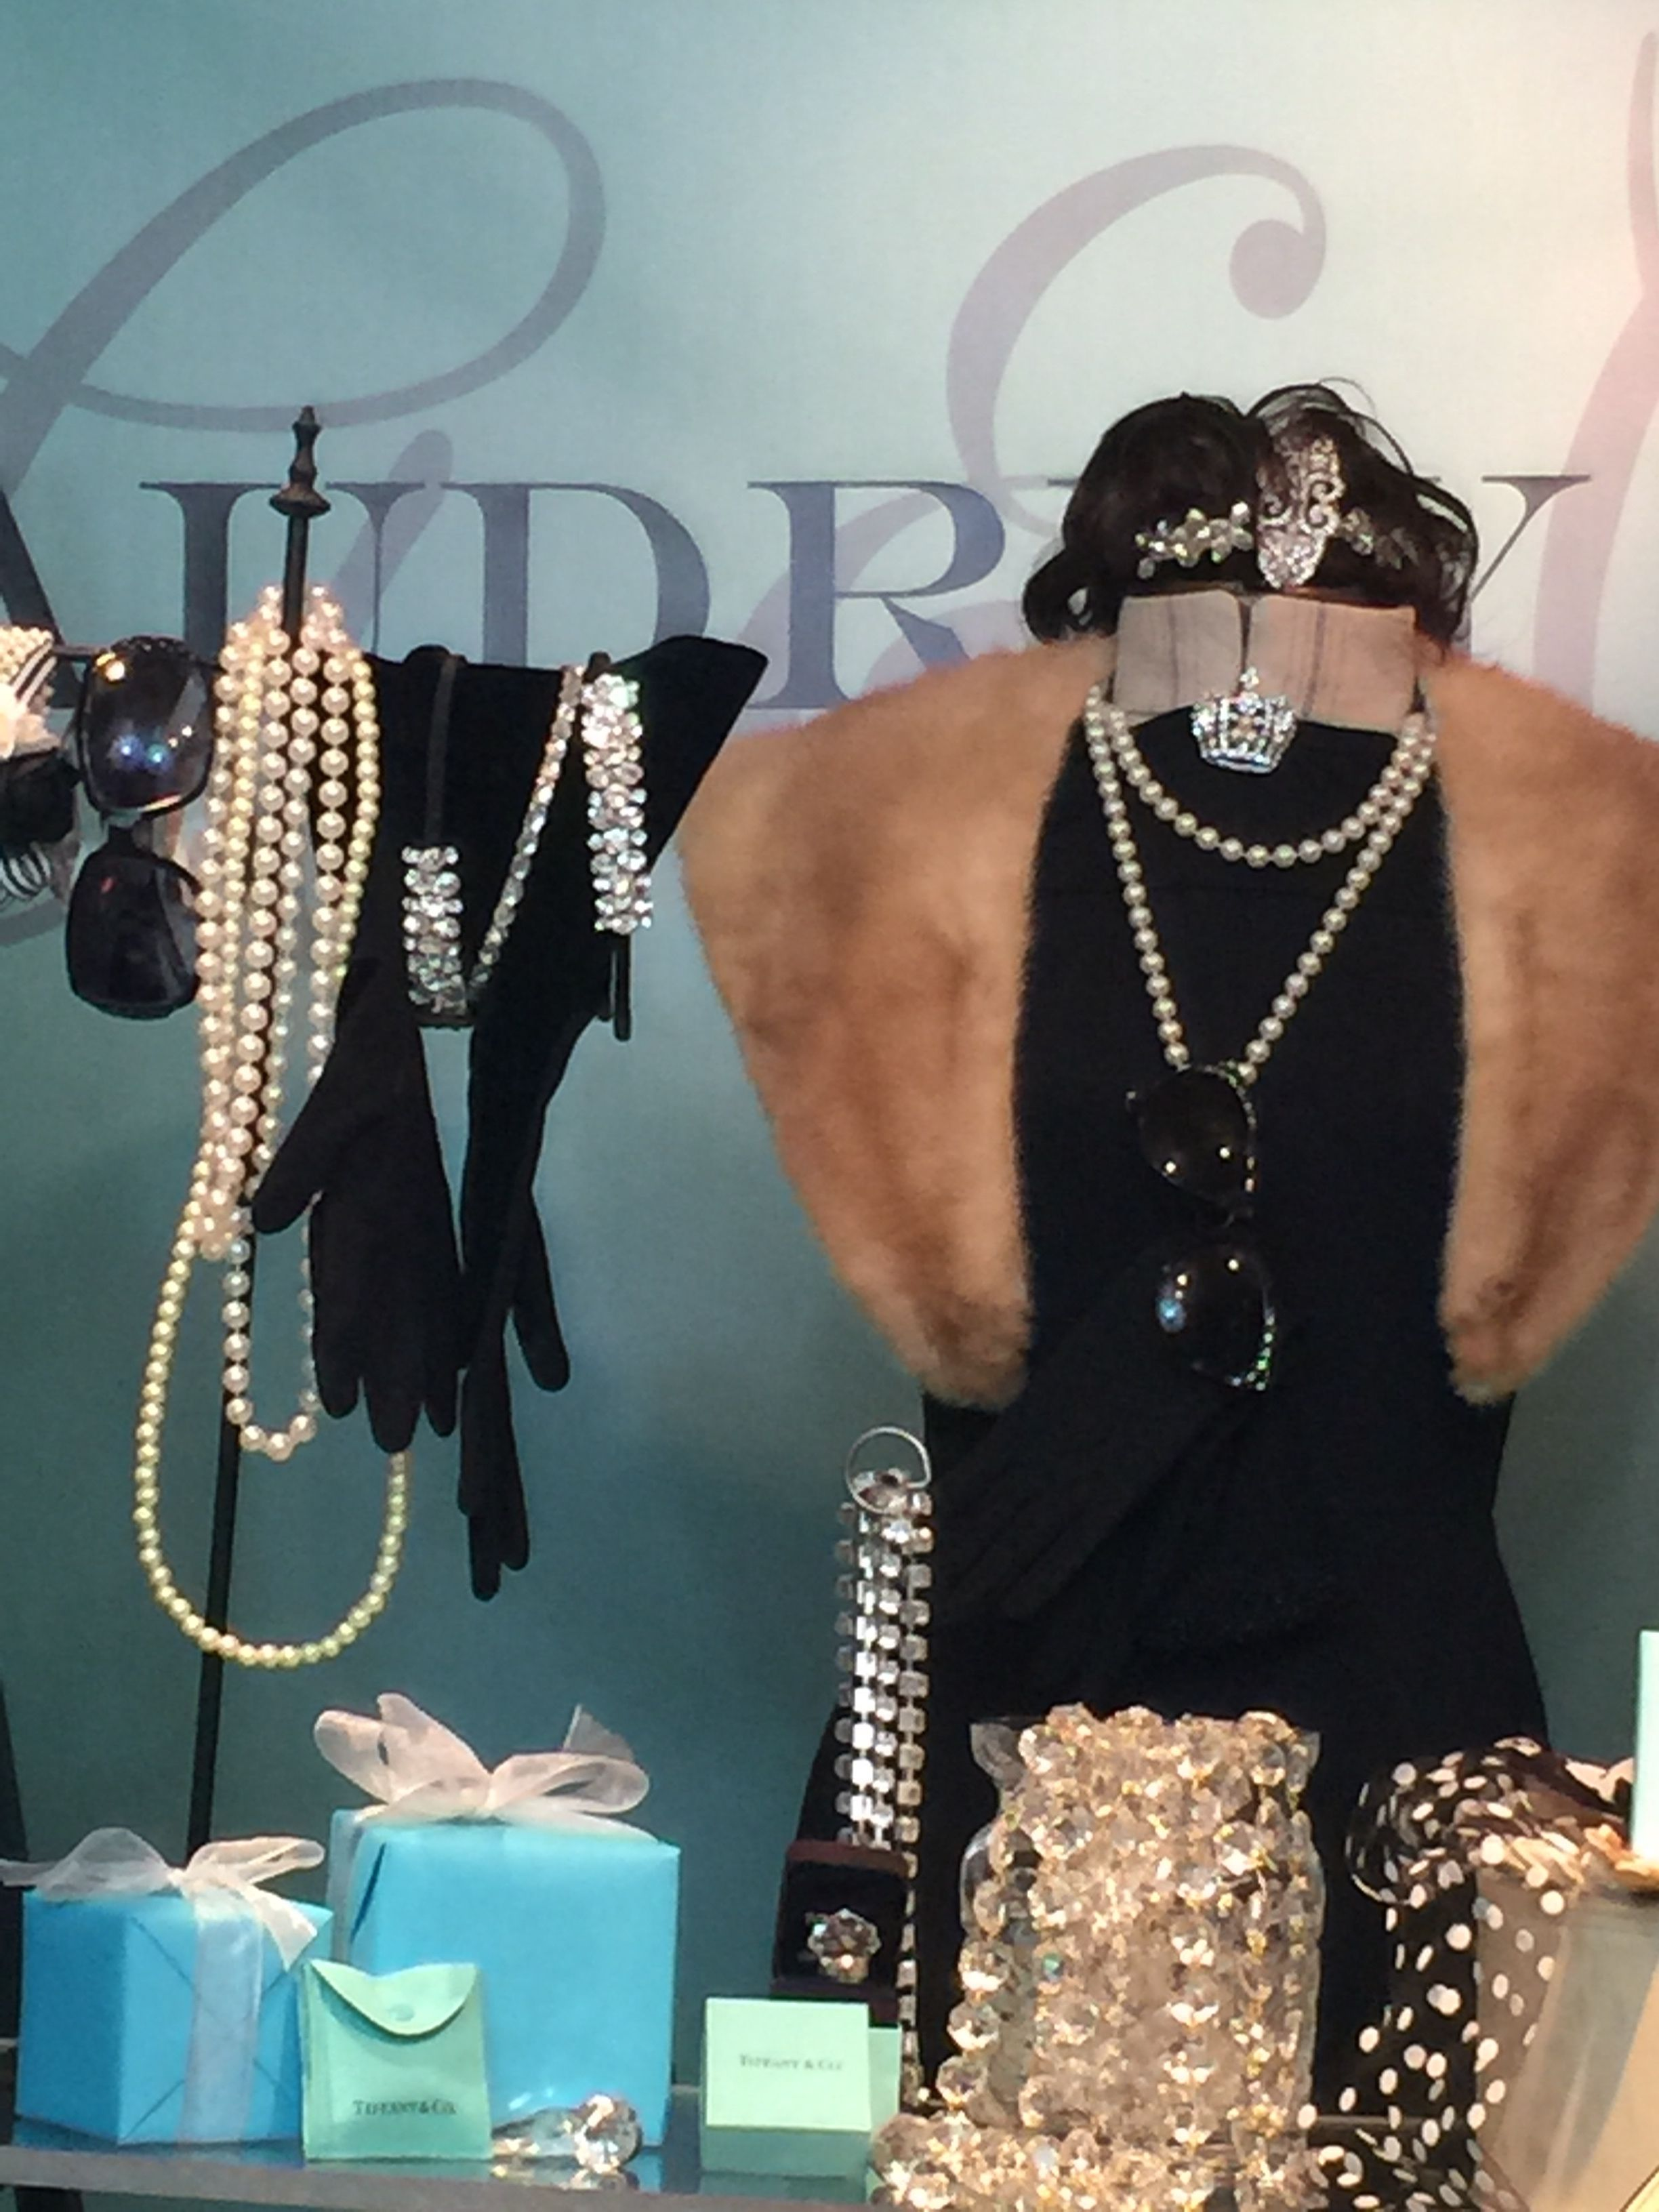 Black dress, pearls, tiaras, sunglasses, a lot of turquoise, crystals and throw in a fur or a cat and you have your movie set.